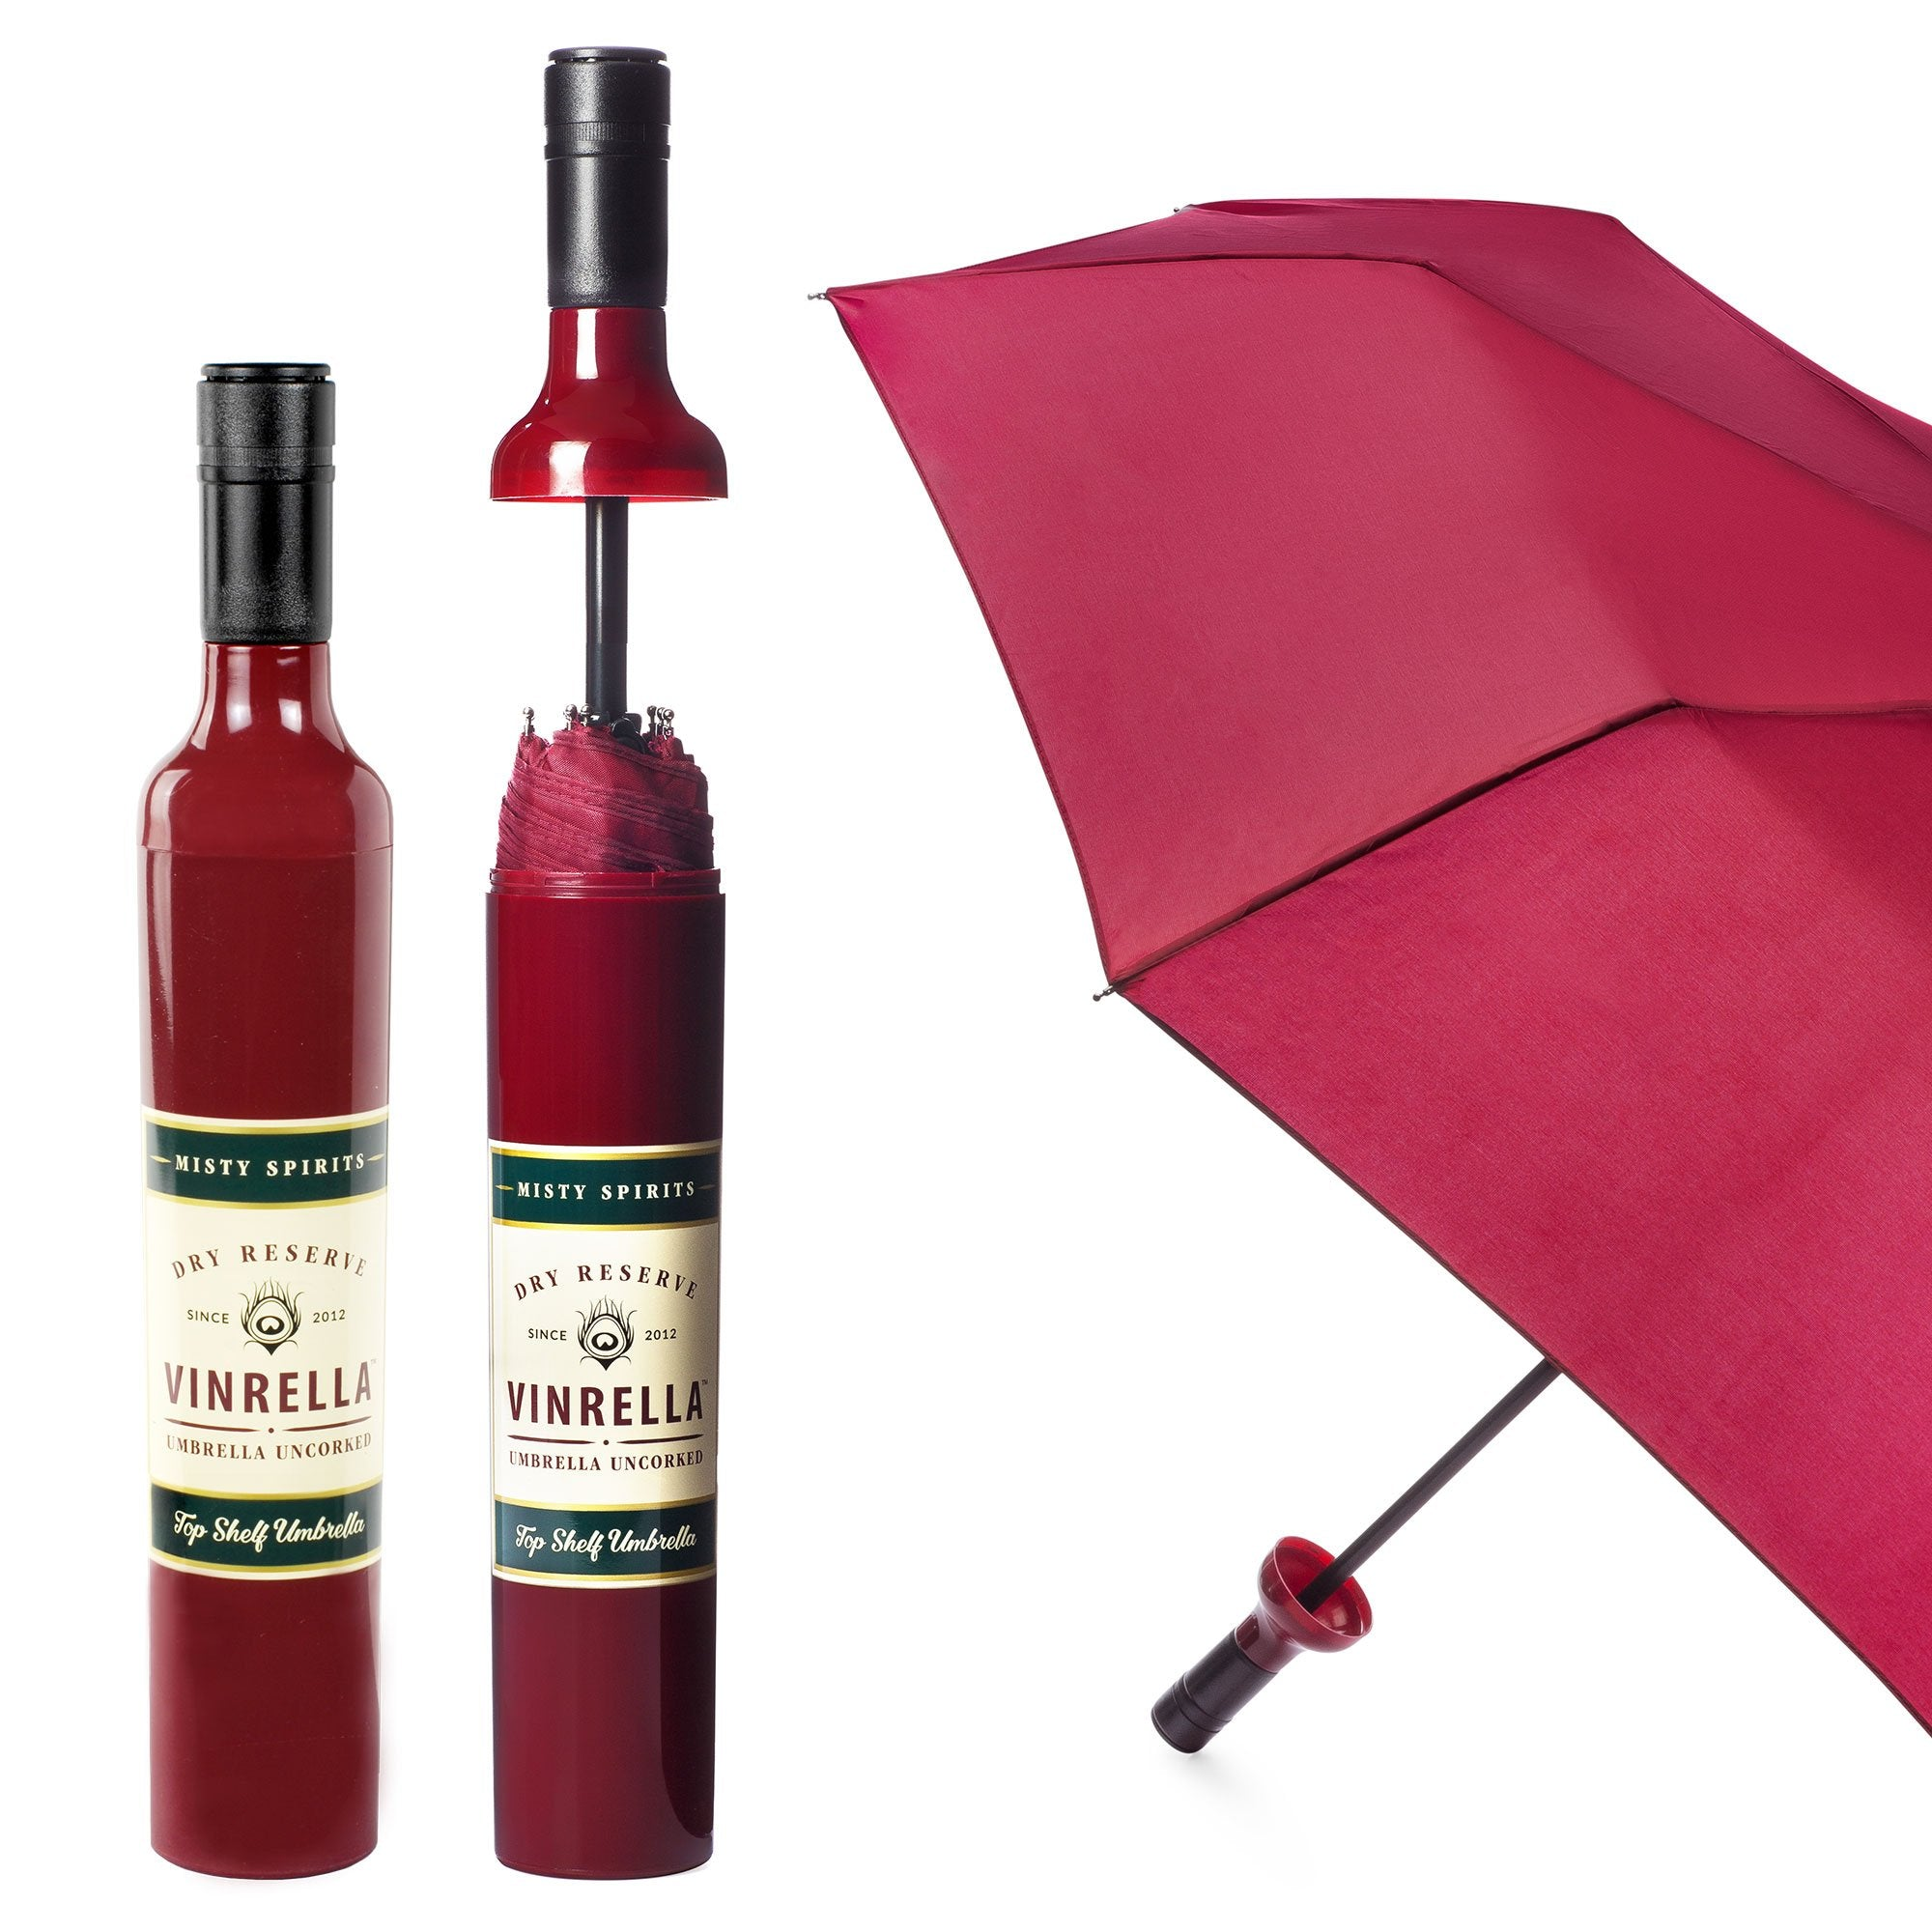 VINRELLA Wine Bottle Umbrellas, Reserve Burgundy